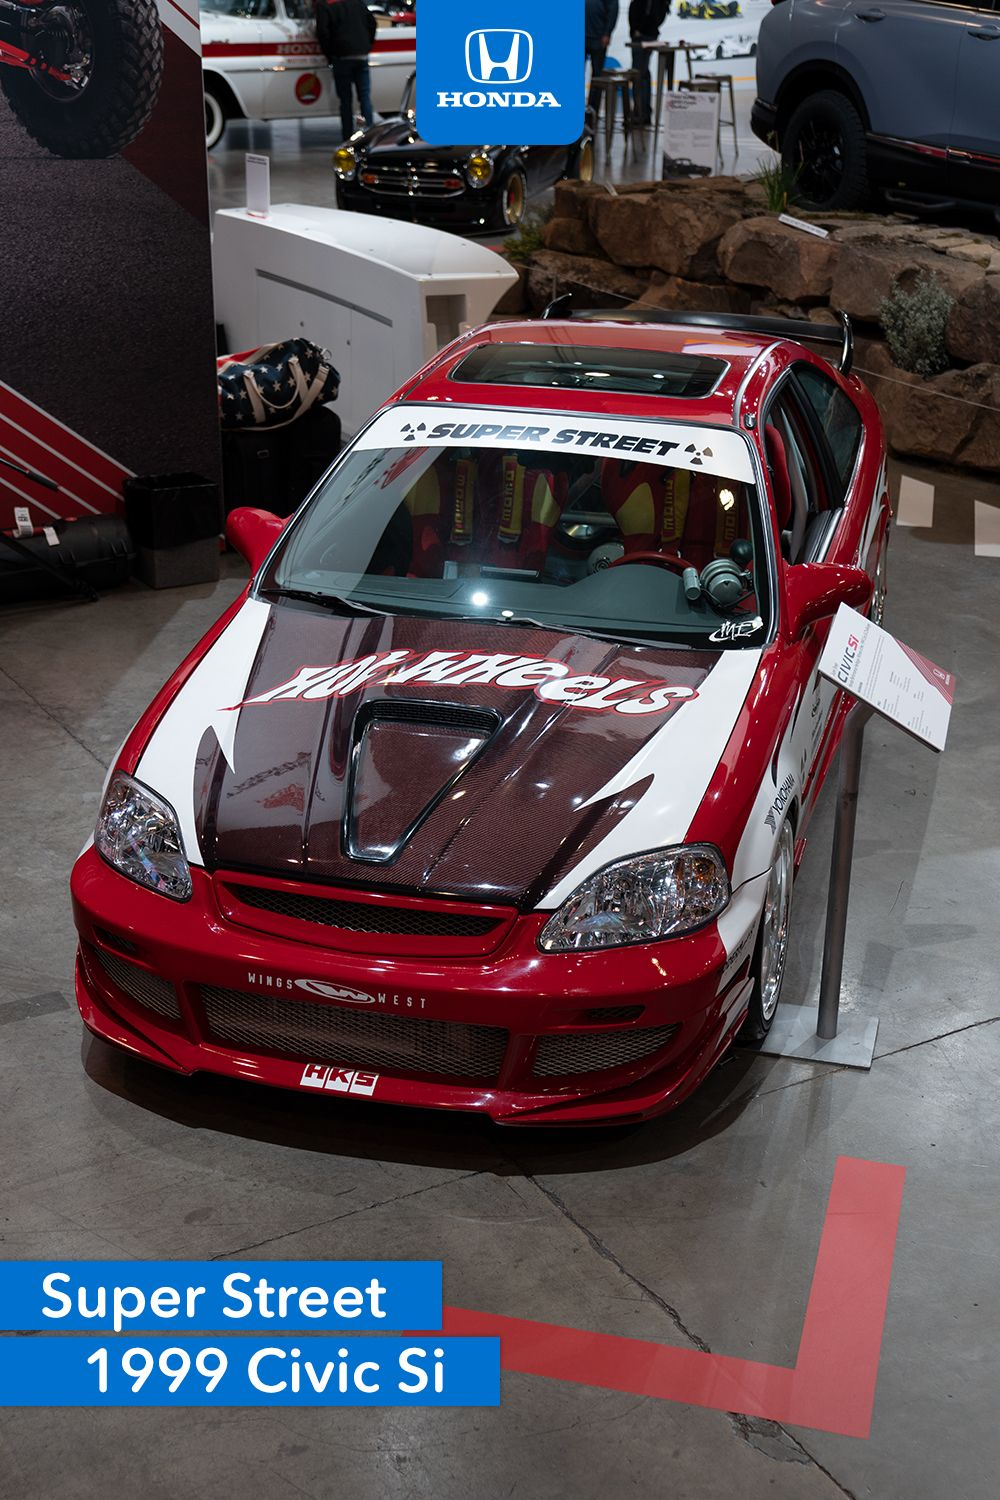 Honda Civic Si 2000 Modified : honda, civic, modified, Wheels, Super, Street, Series, Online